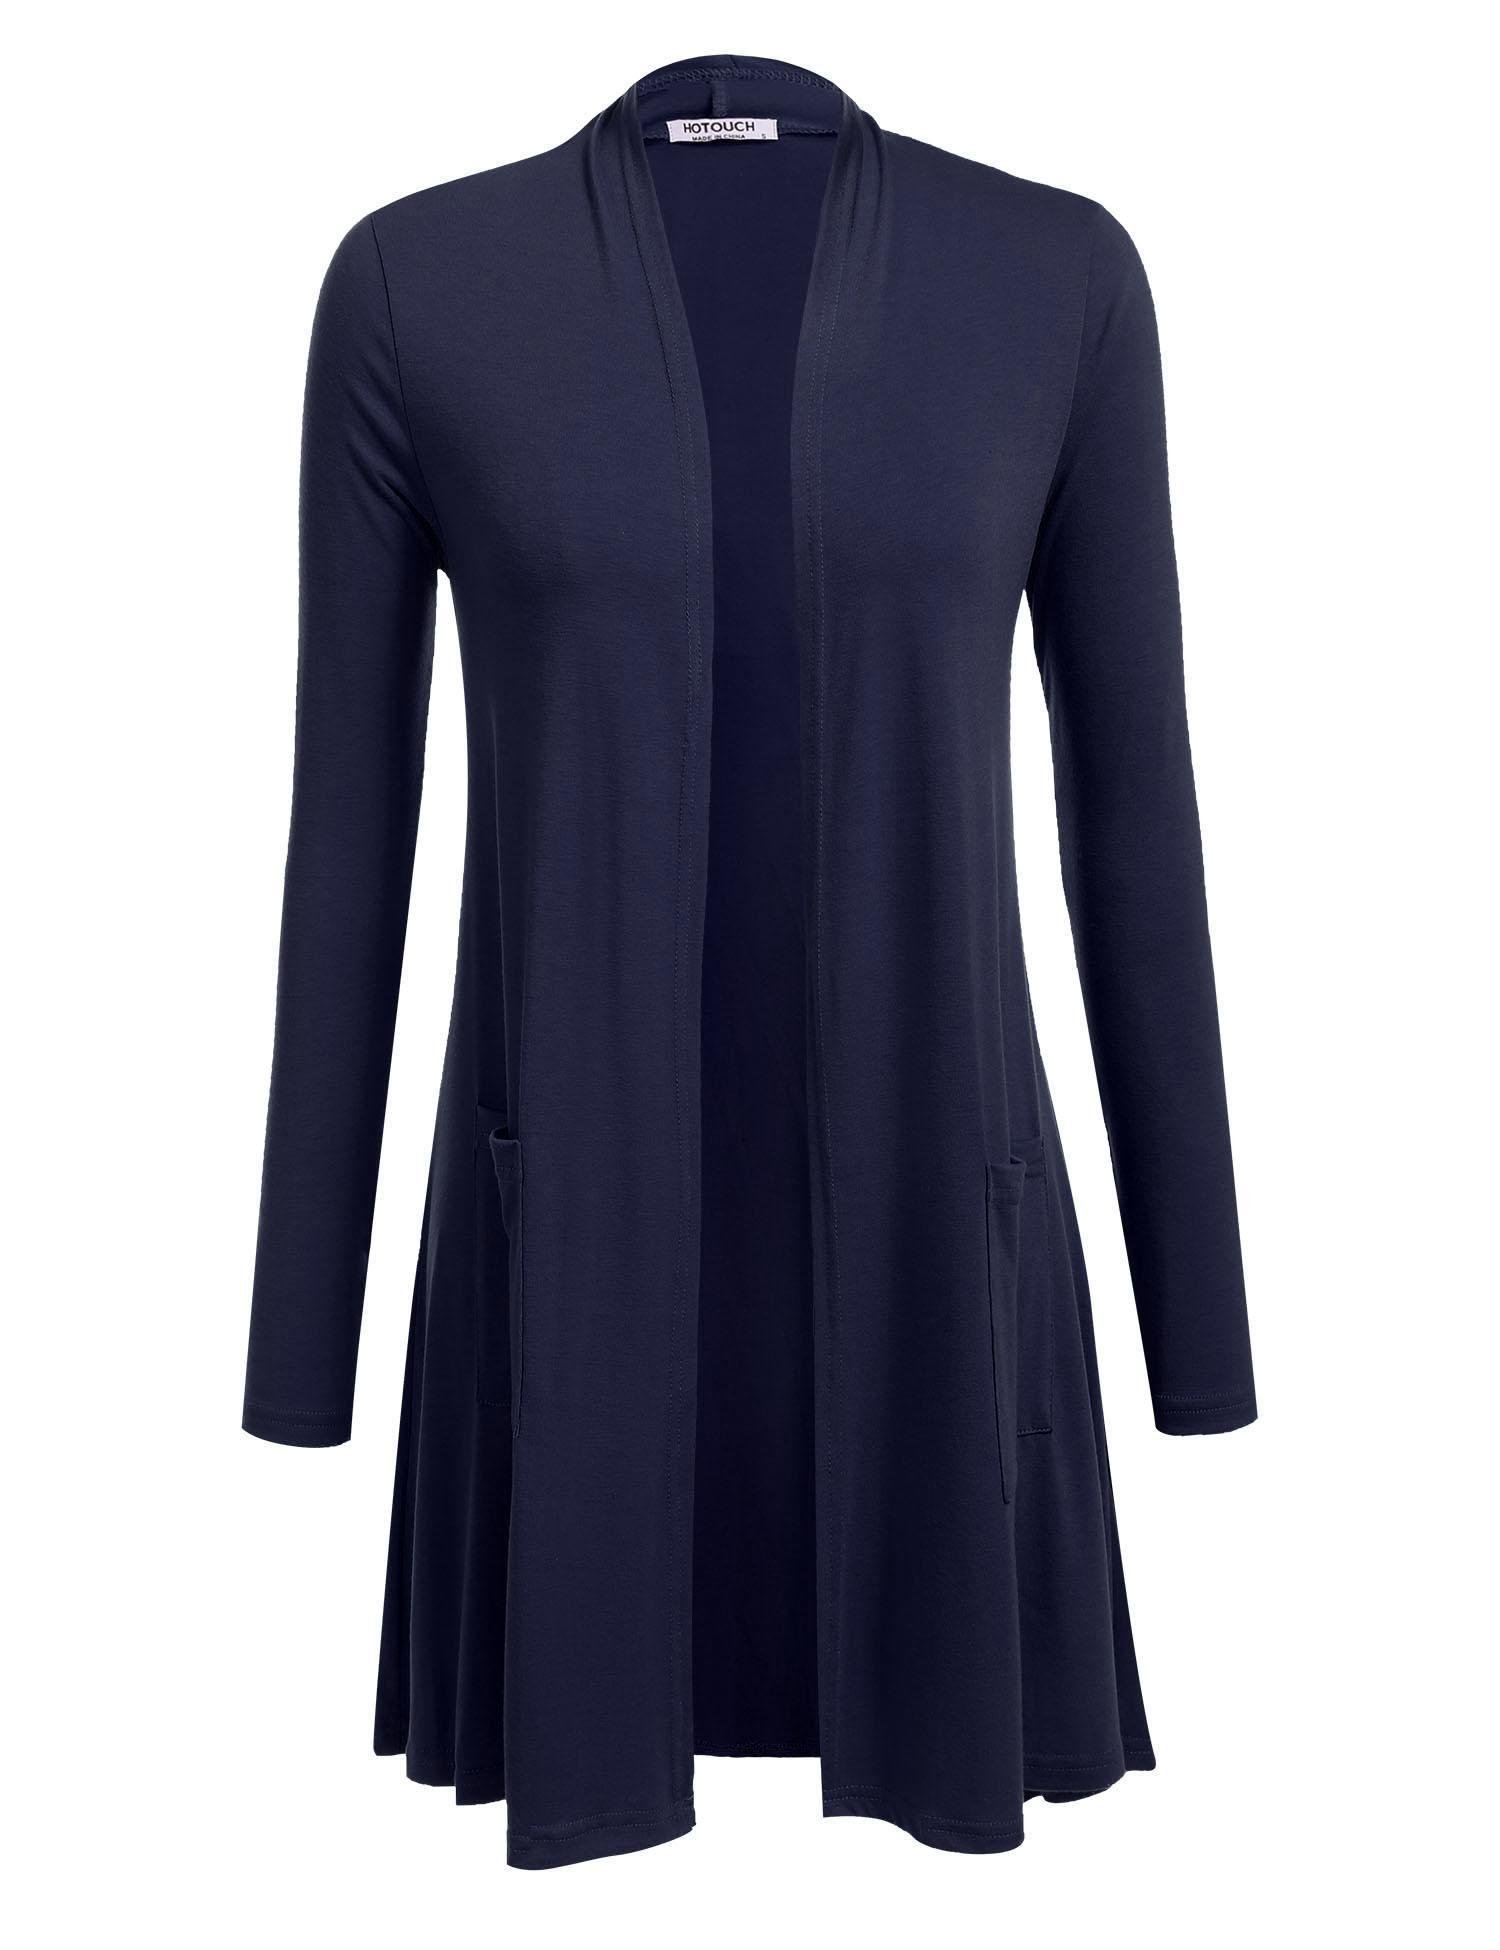 Hotouch Women's Basic Solid Lightweight Long Sleeve Open Front Cardigans Navy Blue M